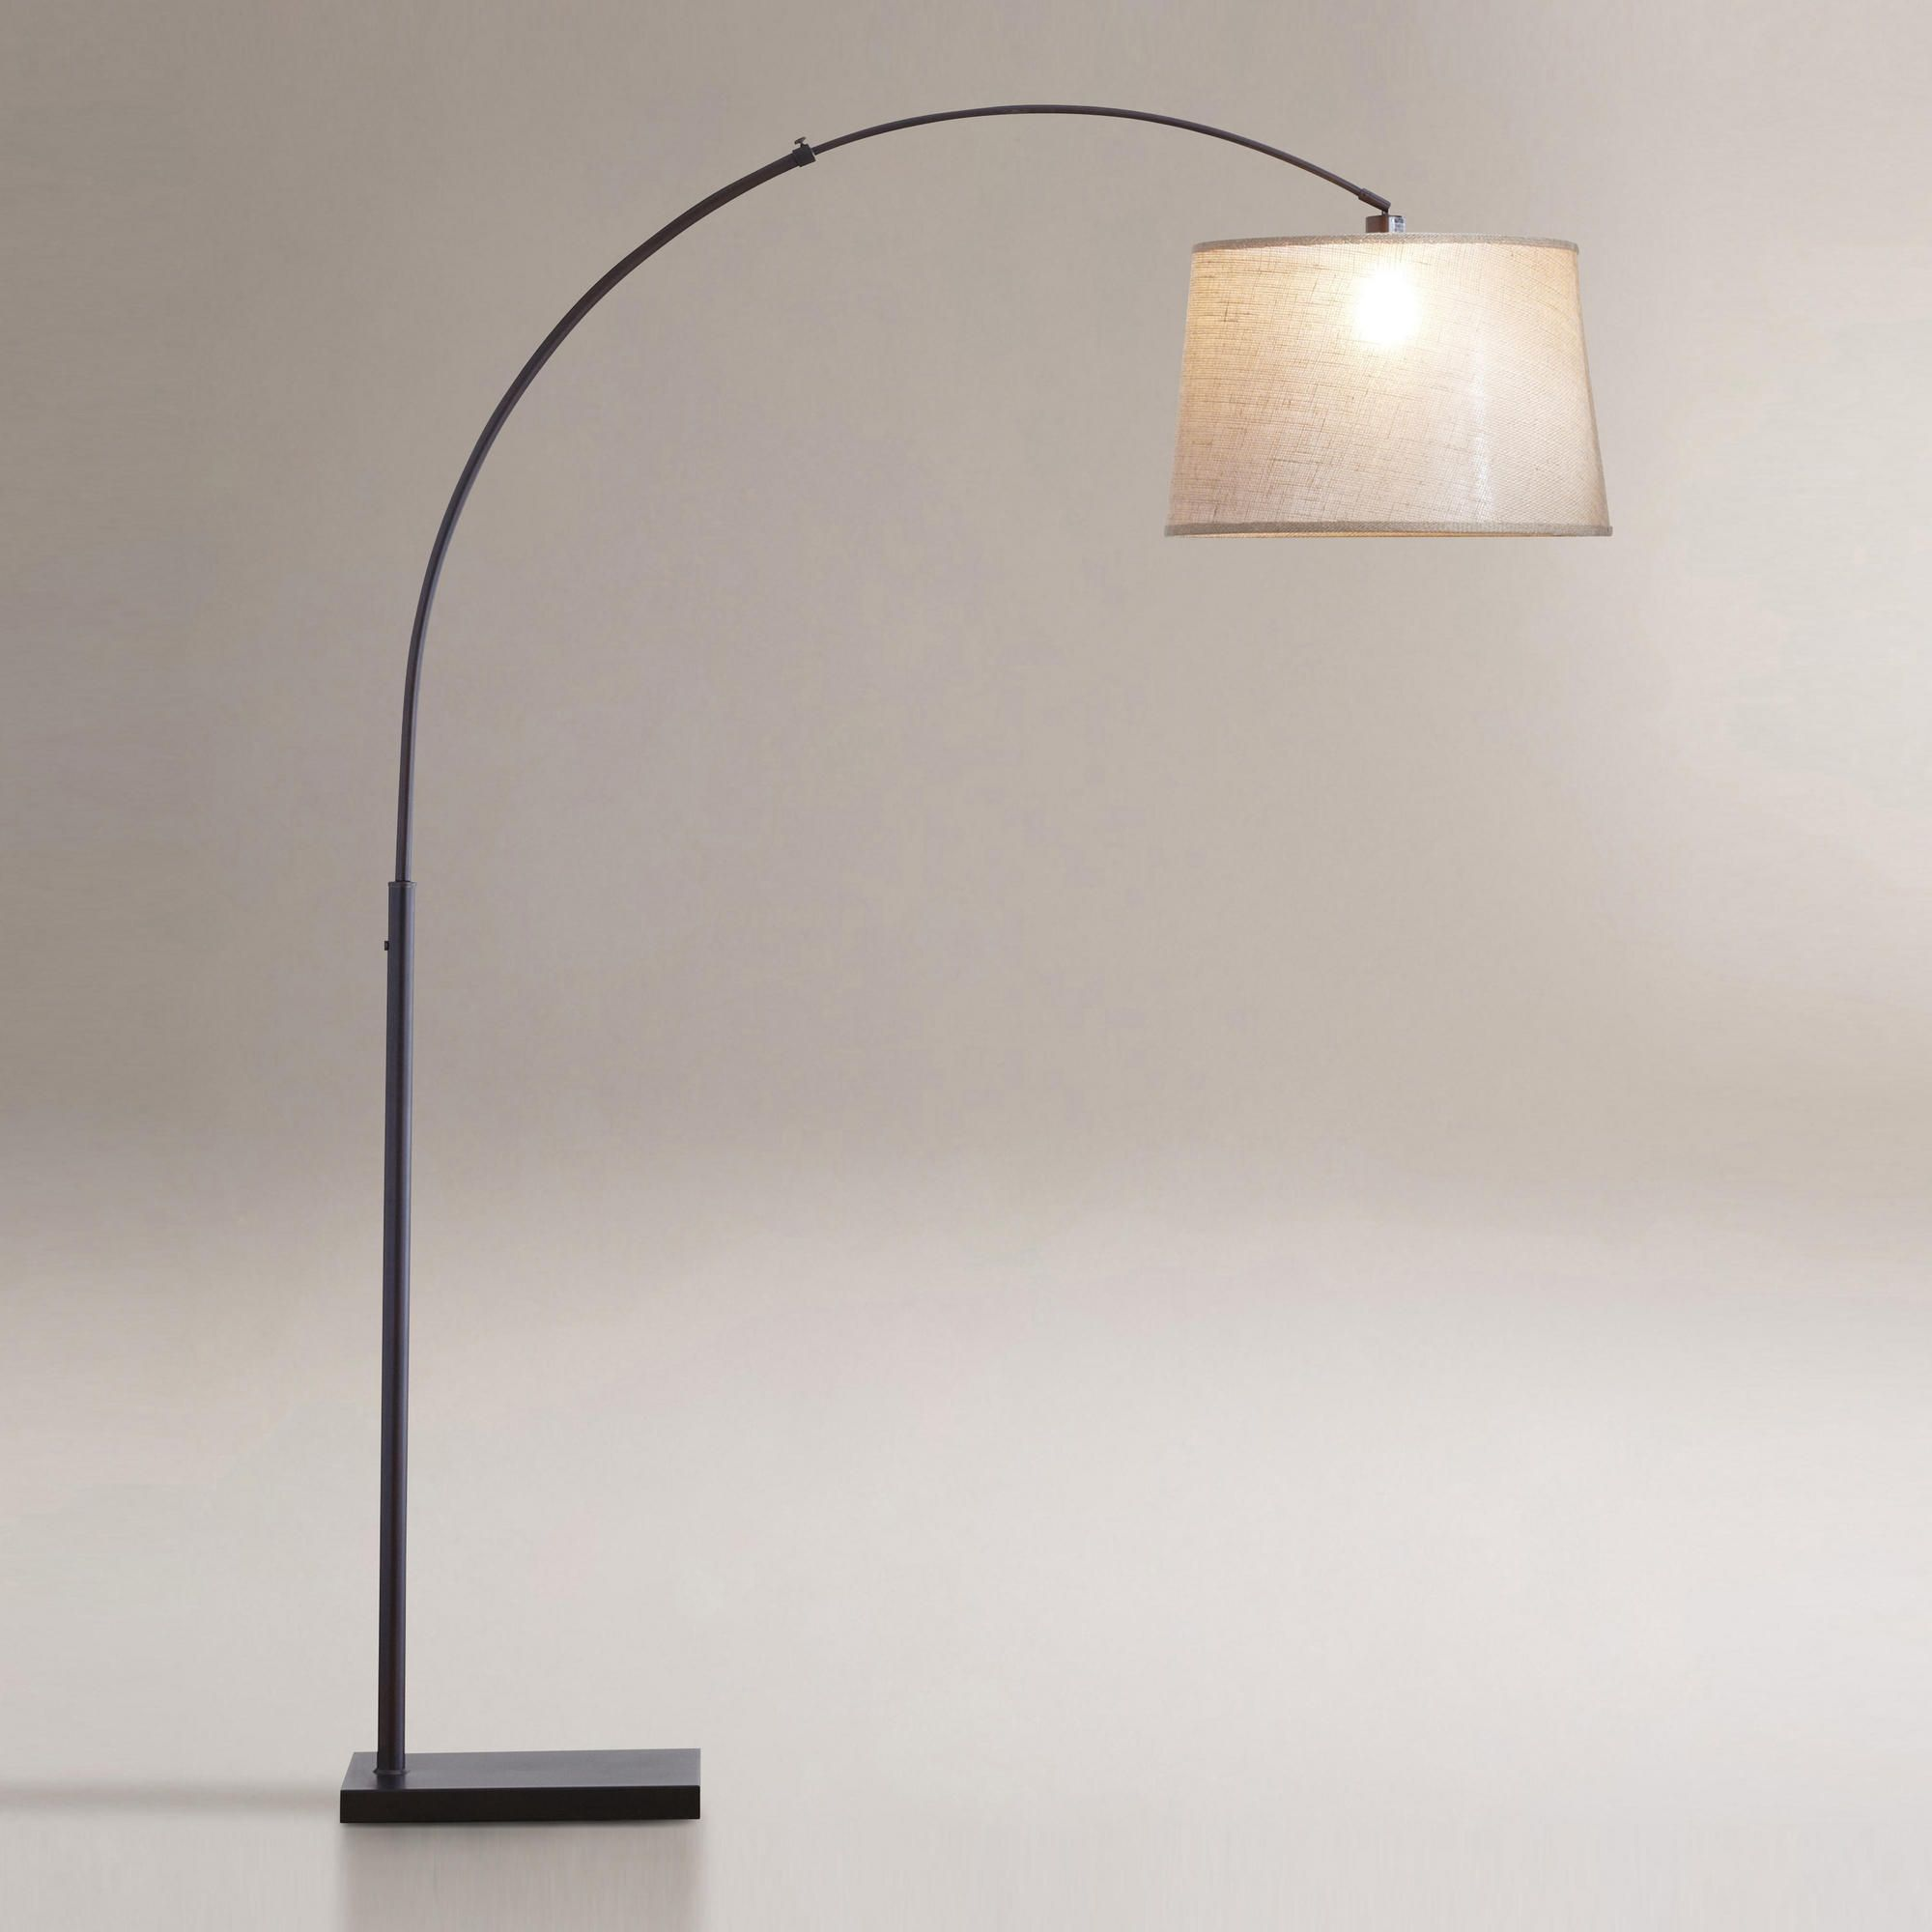 Floor Lamp Base Alluring Large Shade Arc Floor Lamp  Httpafshowcaseprop  Pinterest Review